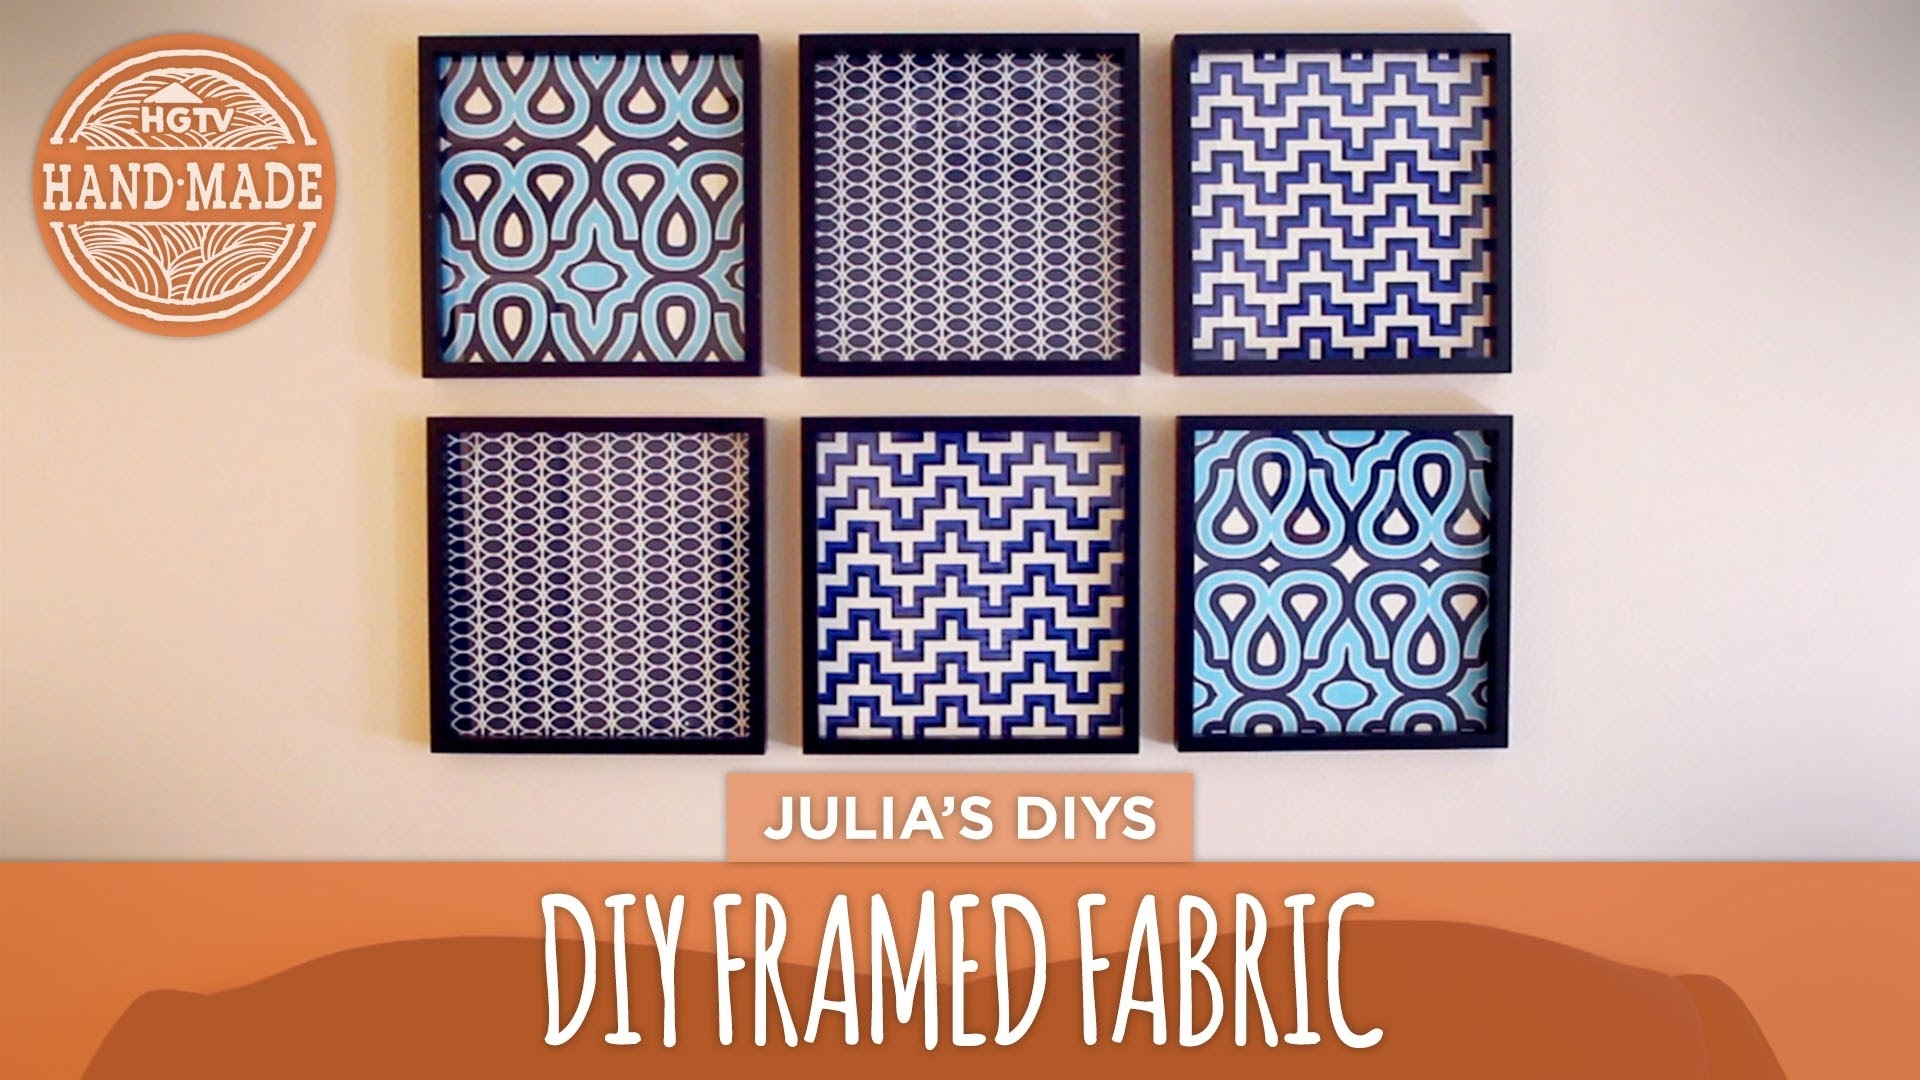 Diy Framed Fabric Gallery Wall – Hgtv Handmade – Youtube Regarding Most Current Framed Textile Wall Art (Gallery 3 of 15)